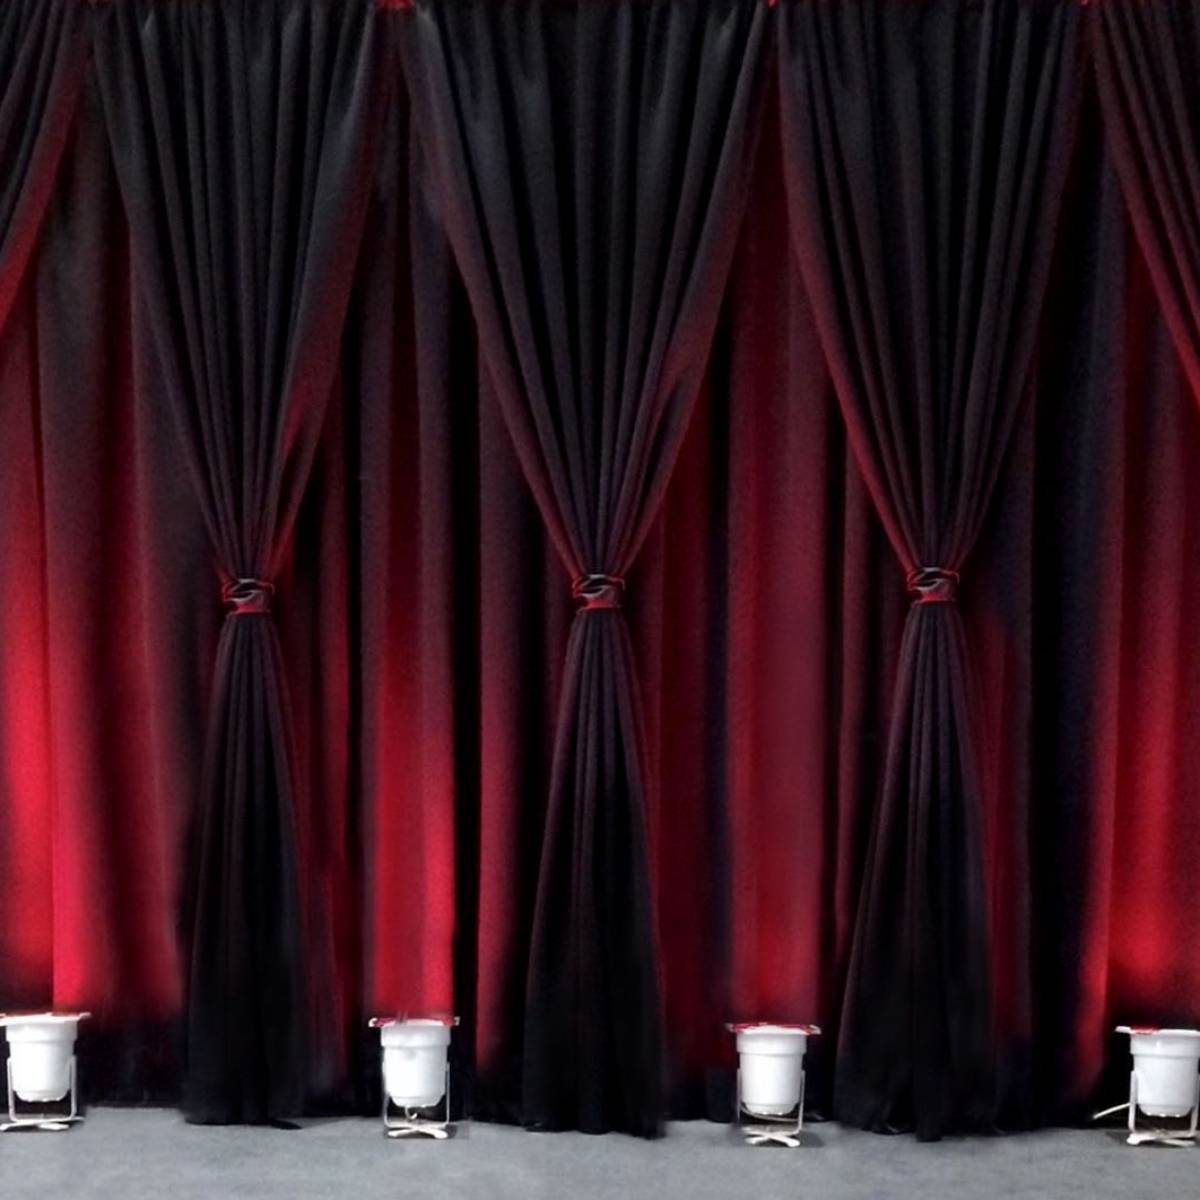 Umbra Drape Backdrops